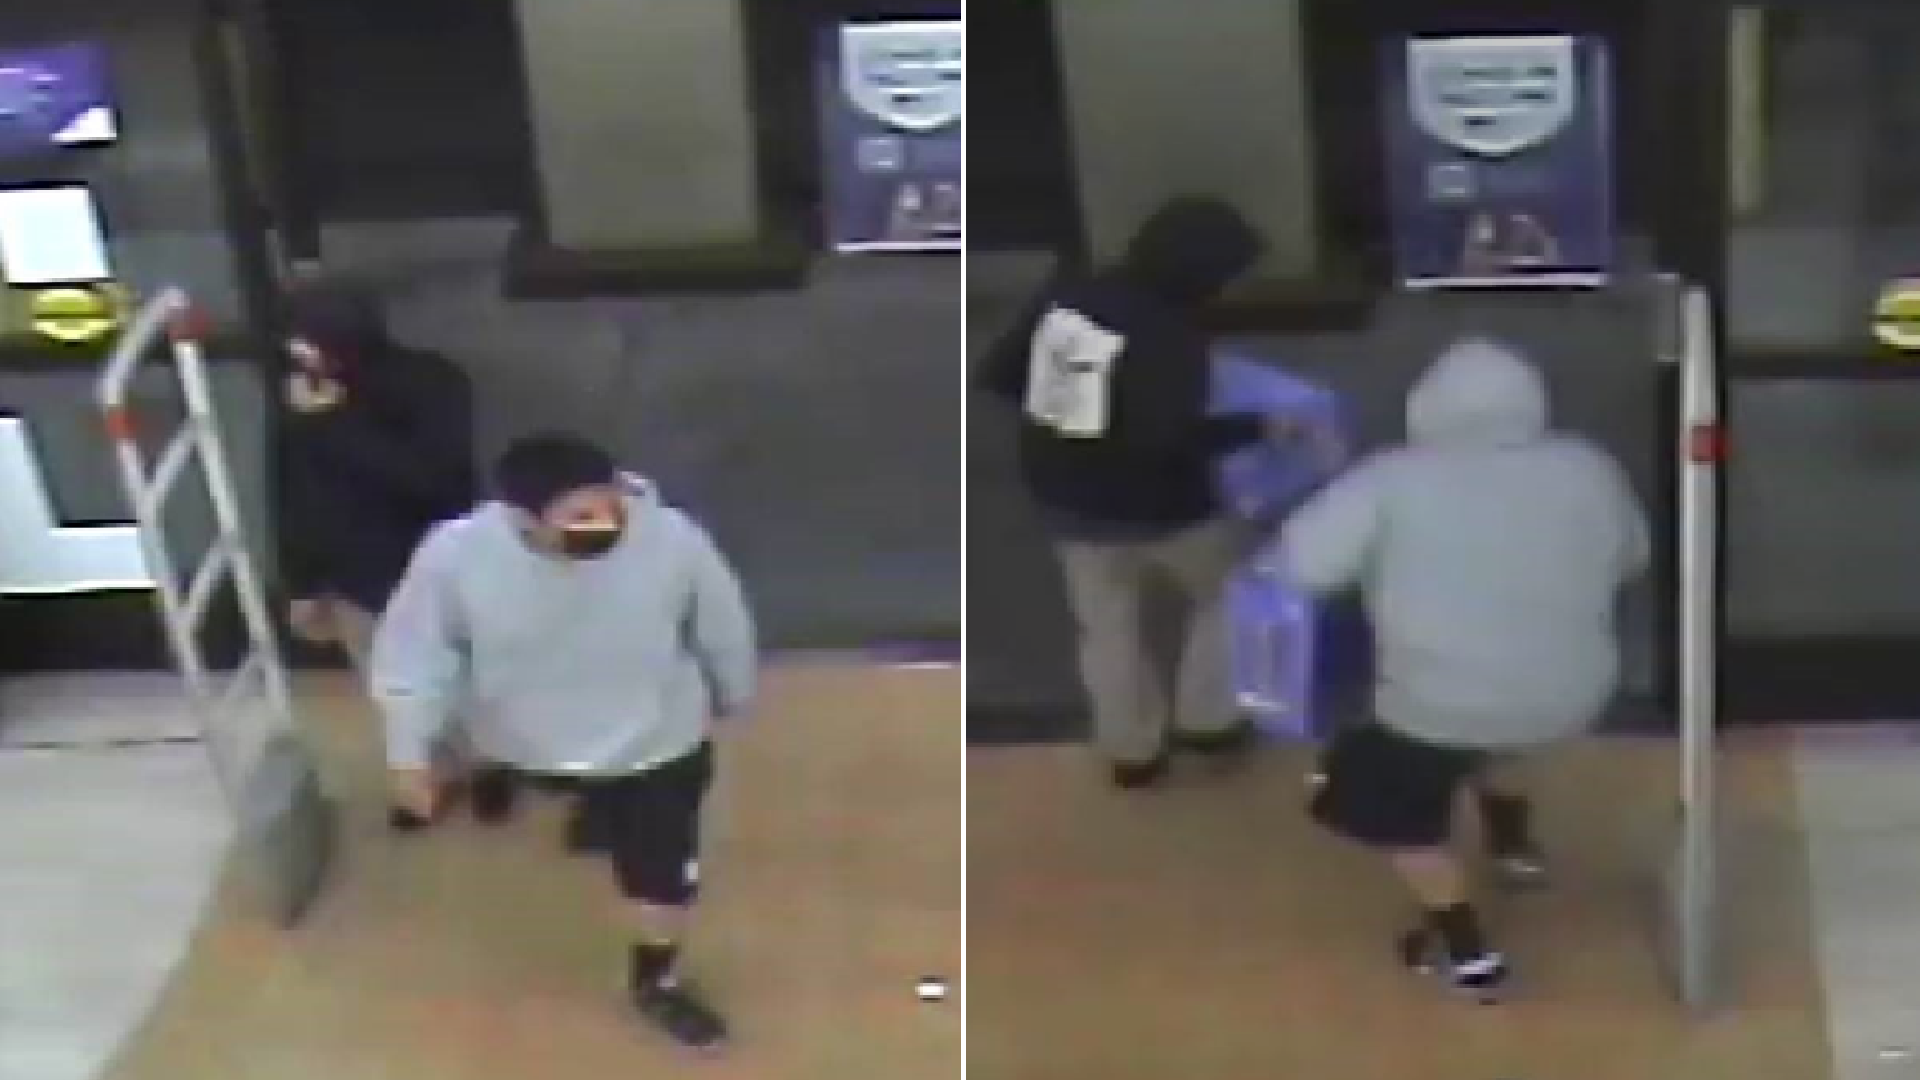 LAPD on July 17, 2021 released these surveillance images of two suspects wanted in the shooting death of a Rite Aid employee in Glassell Park.